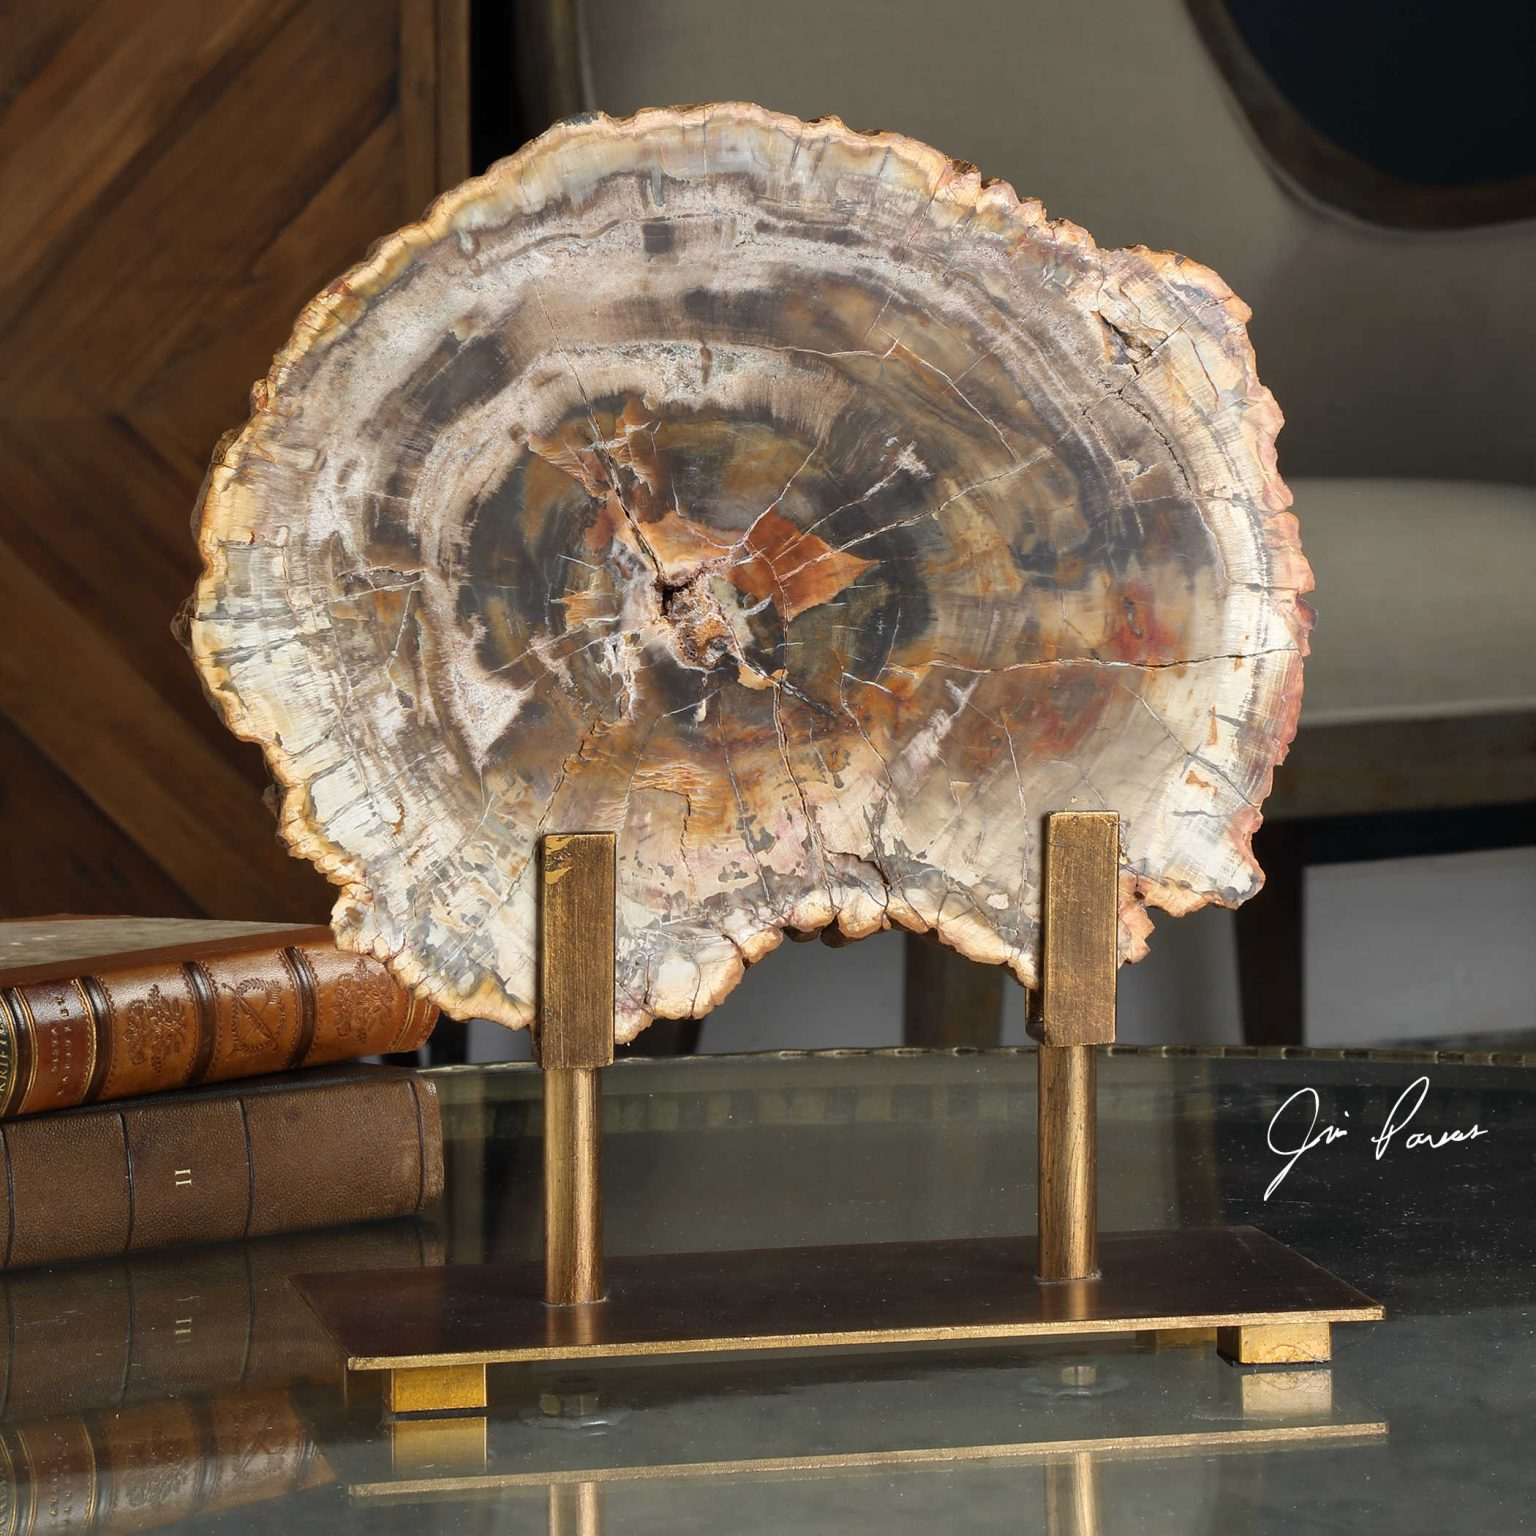 Petrified wood decor compliments the granny chic style